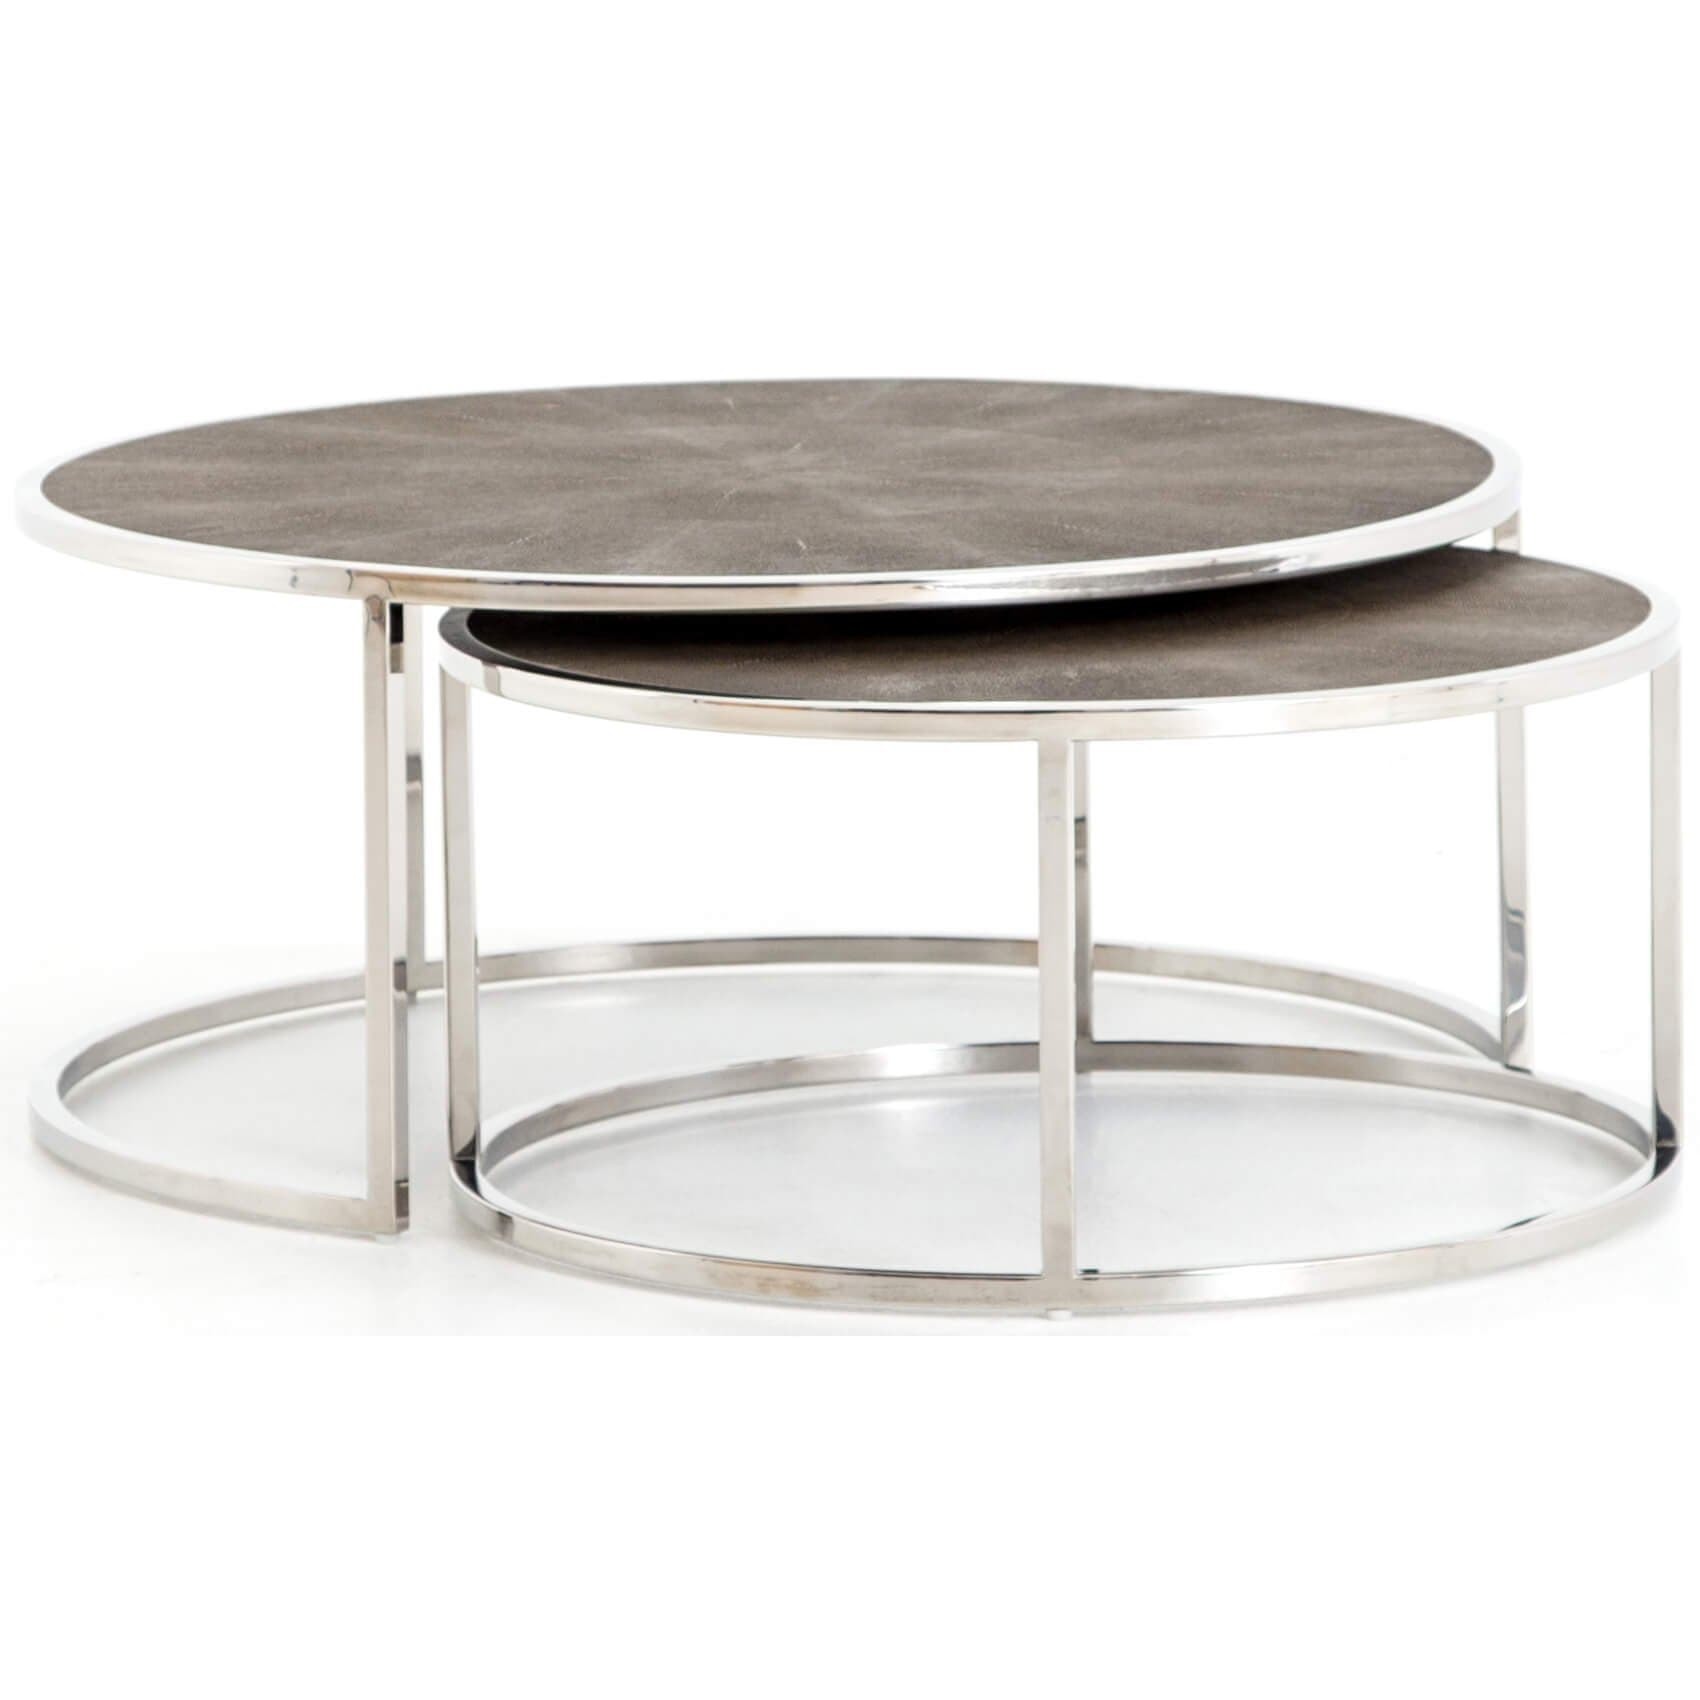 Wondrous Shagreen Nesting Coffee Table Stainless Steel High Caraccident5 Cool Chair Designs And Ideas Caraccident5Info